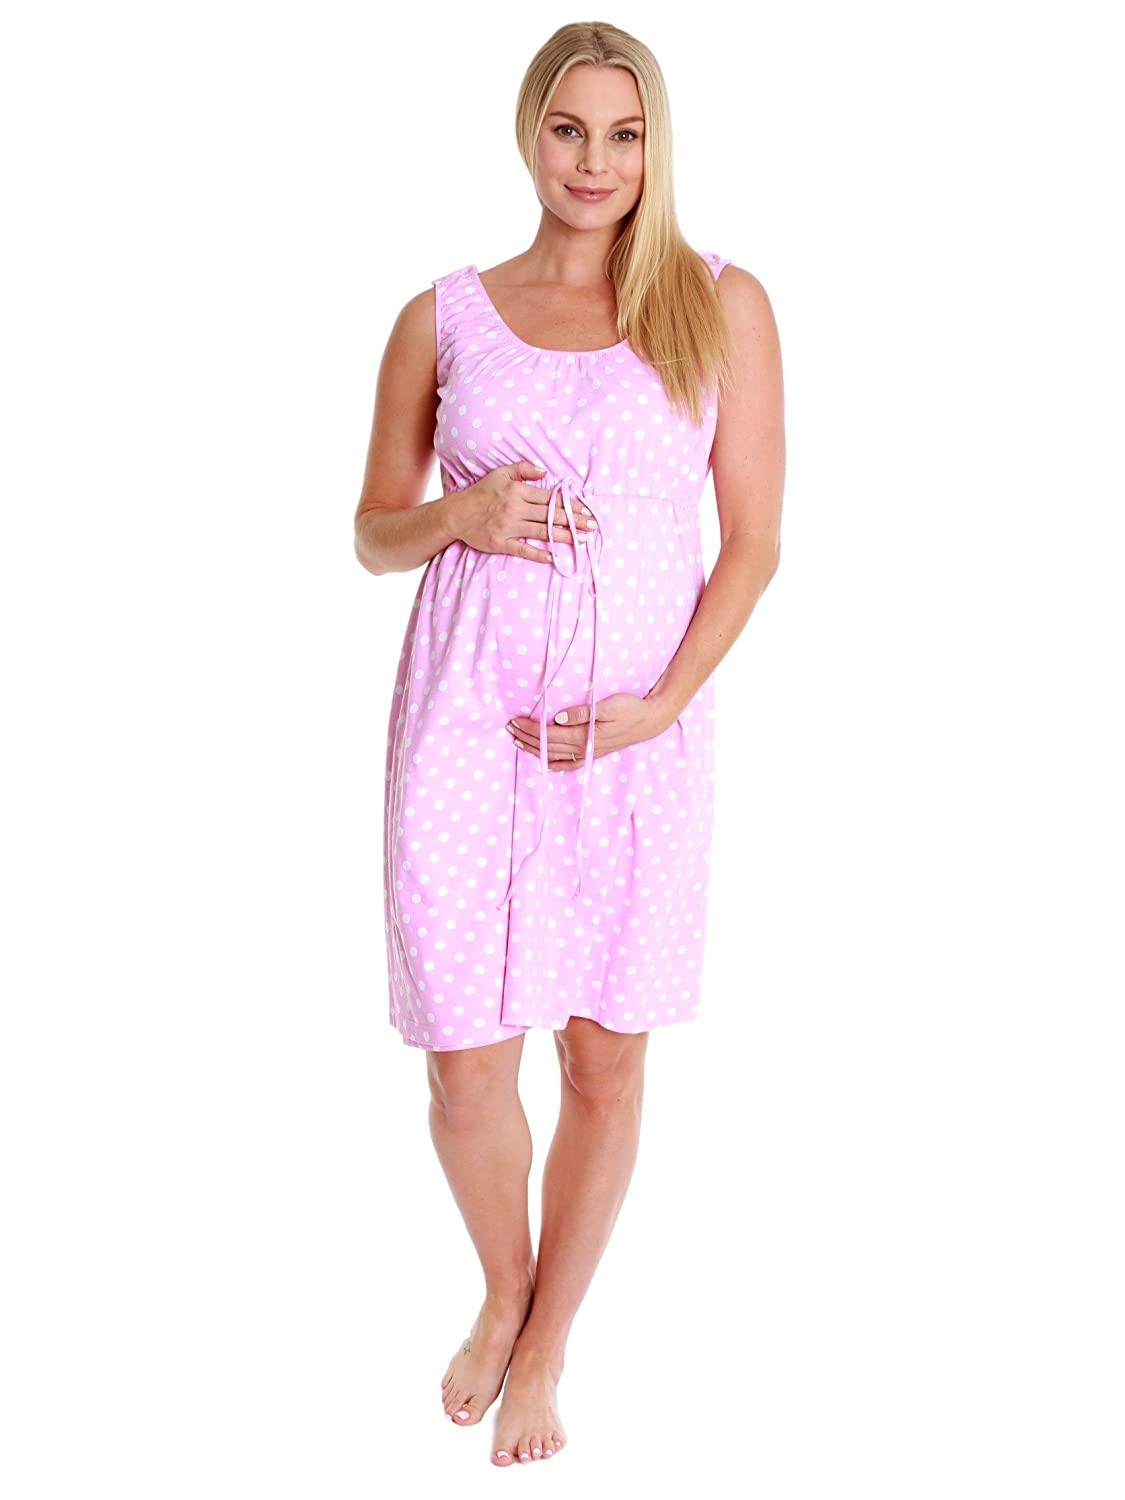 3 in 1 Labor / Delivery / Nursing Gown by Baby Be Mine Maternity